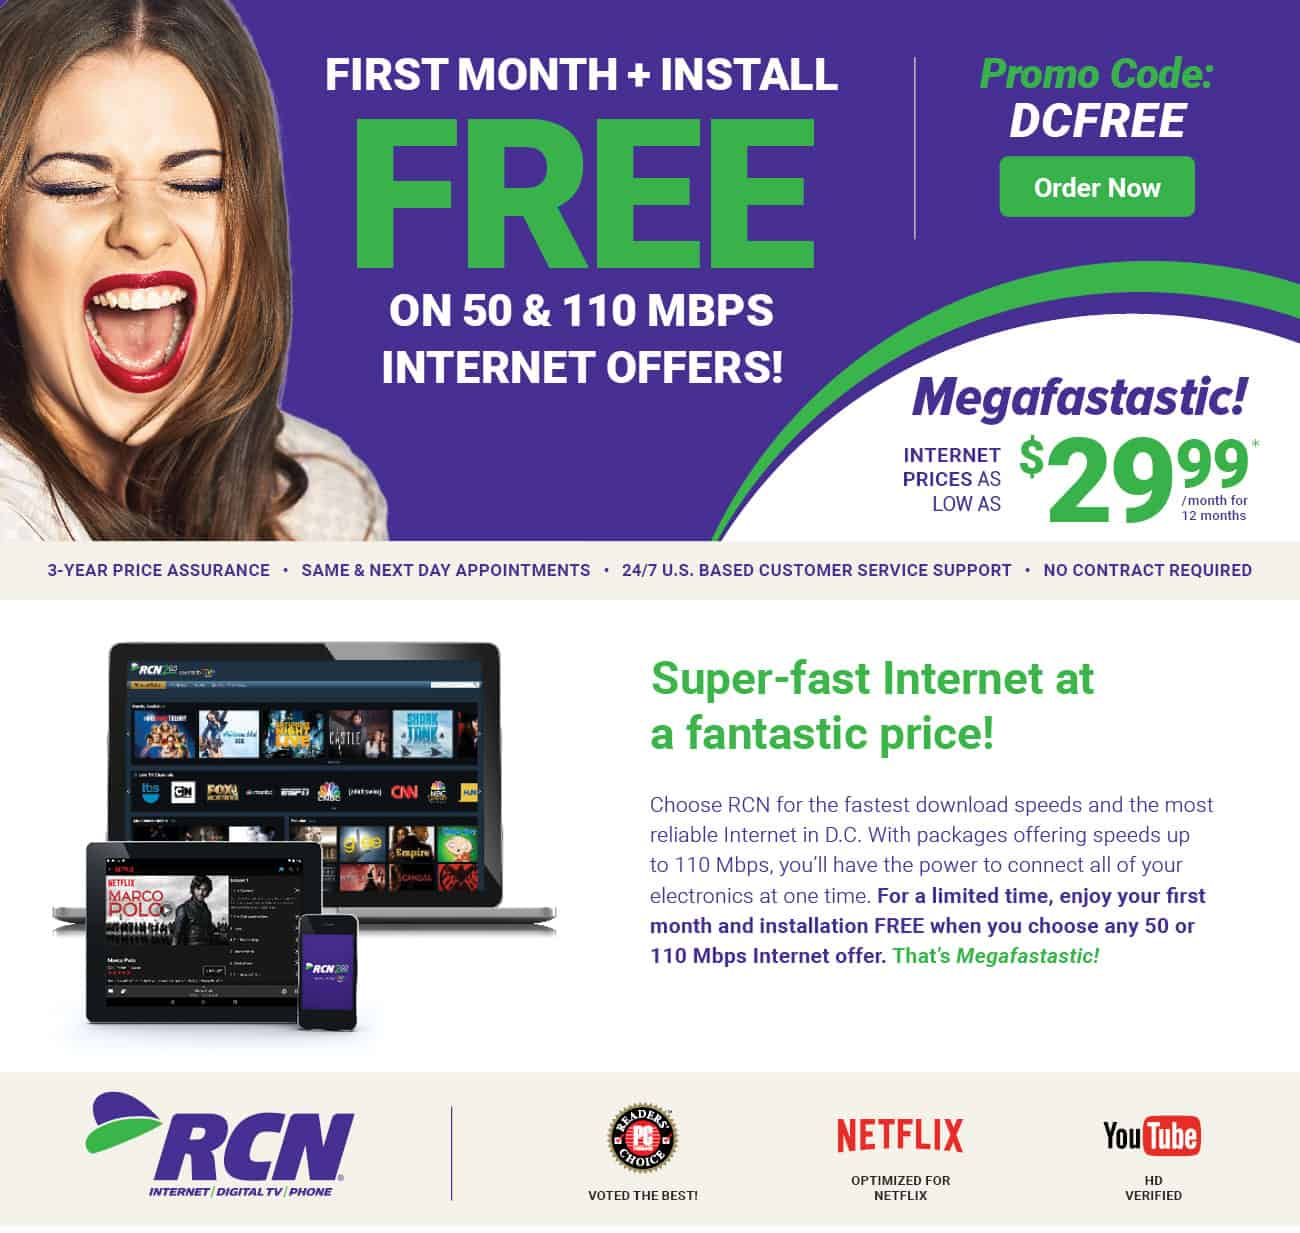 the internet and the price for freedom